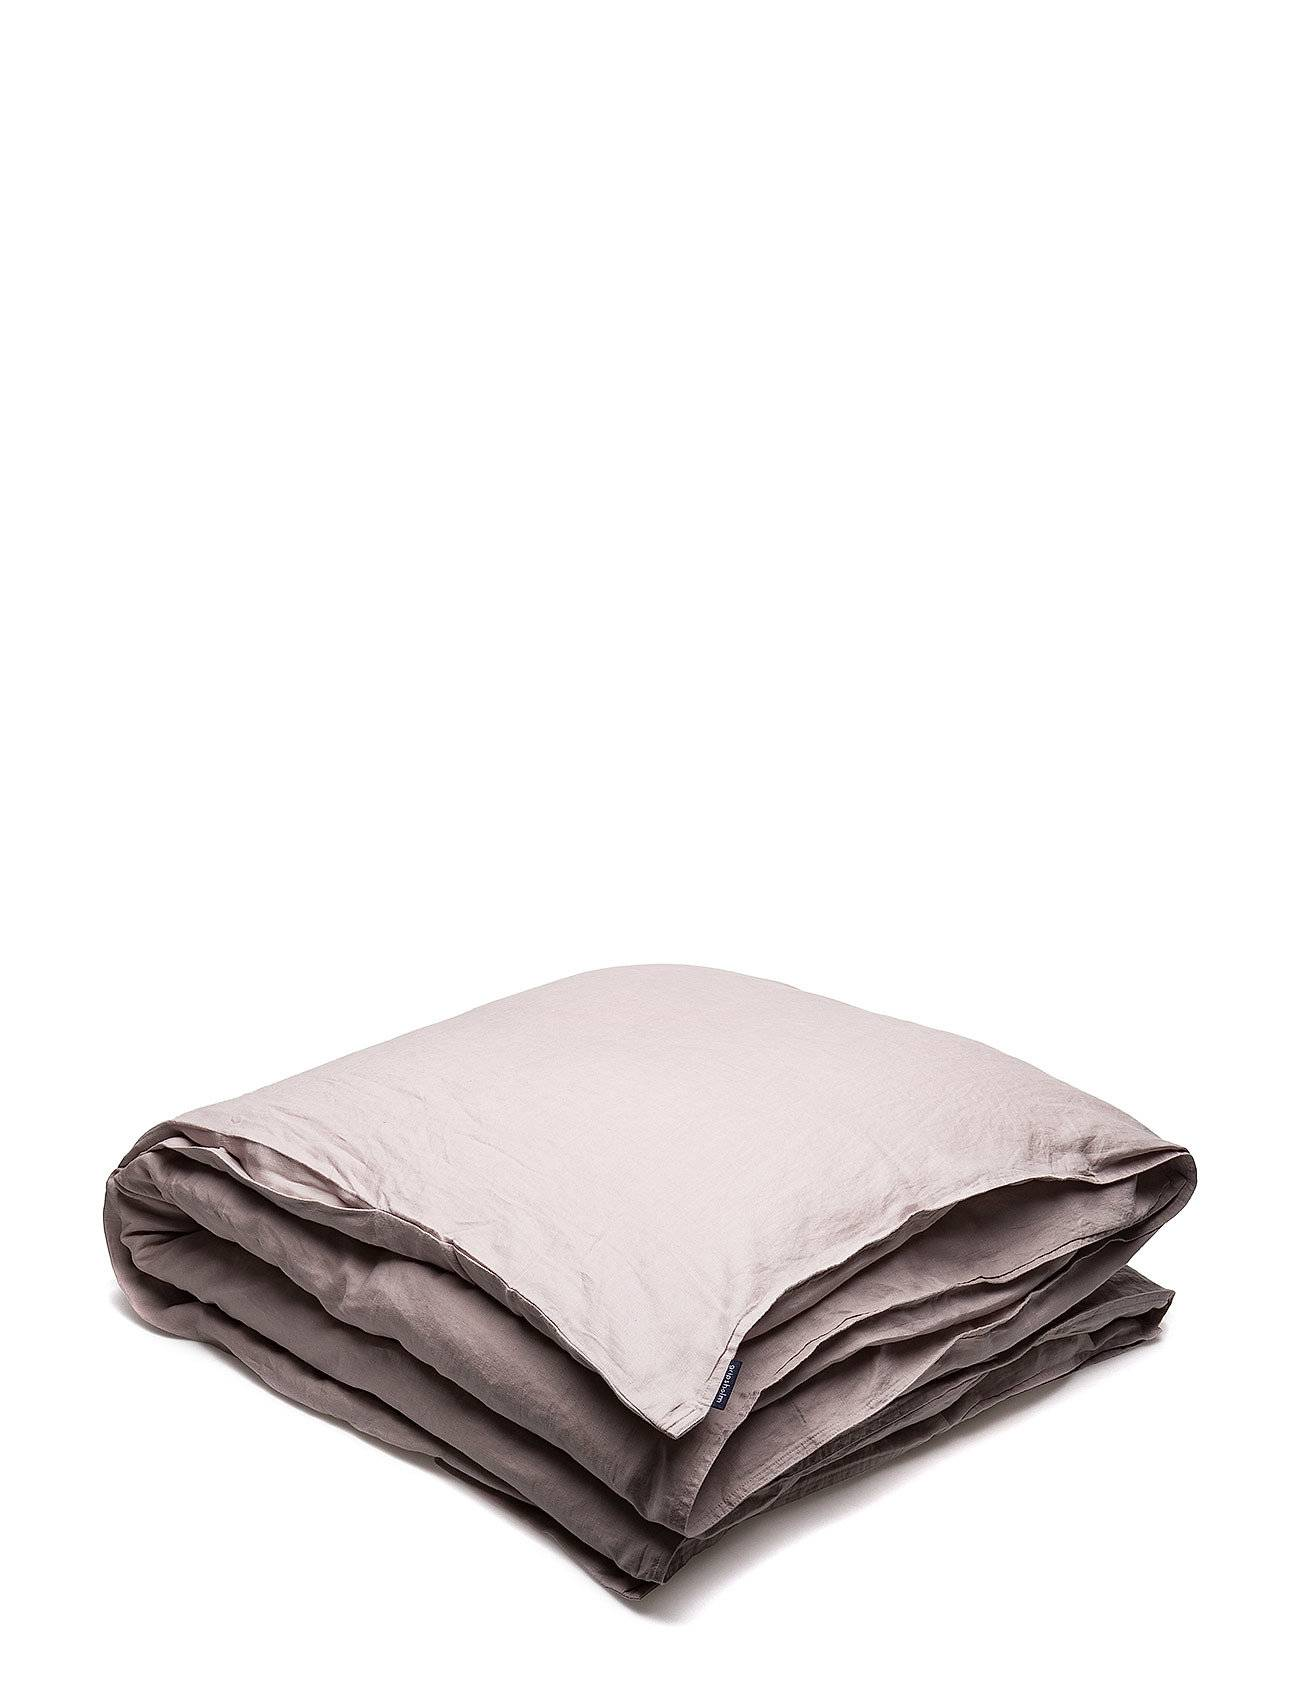 Gripsholm Quilt Cover Washed Linen